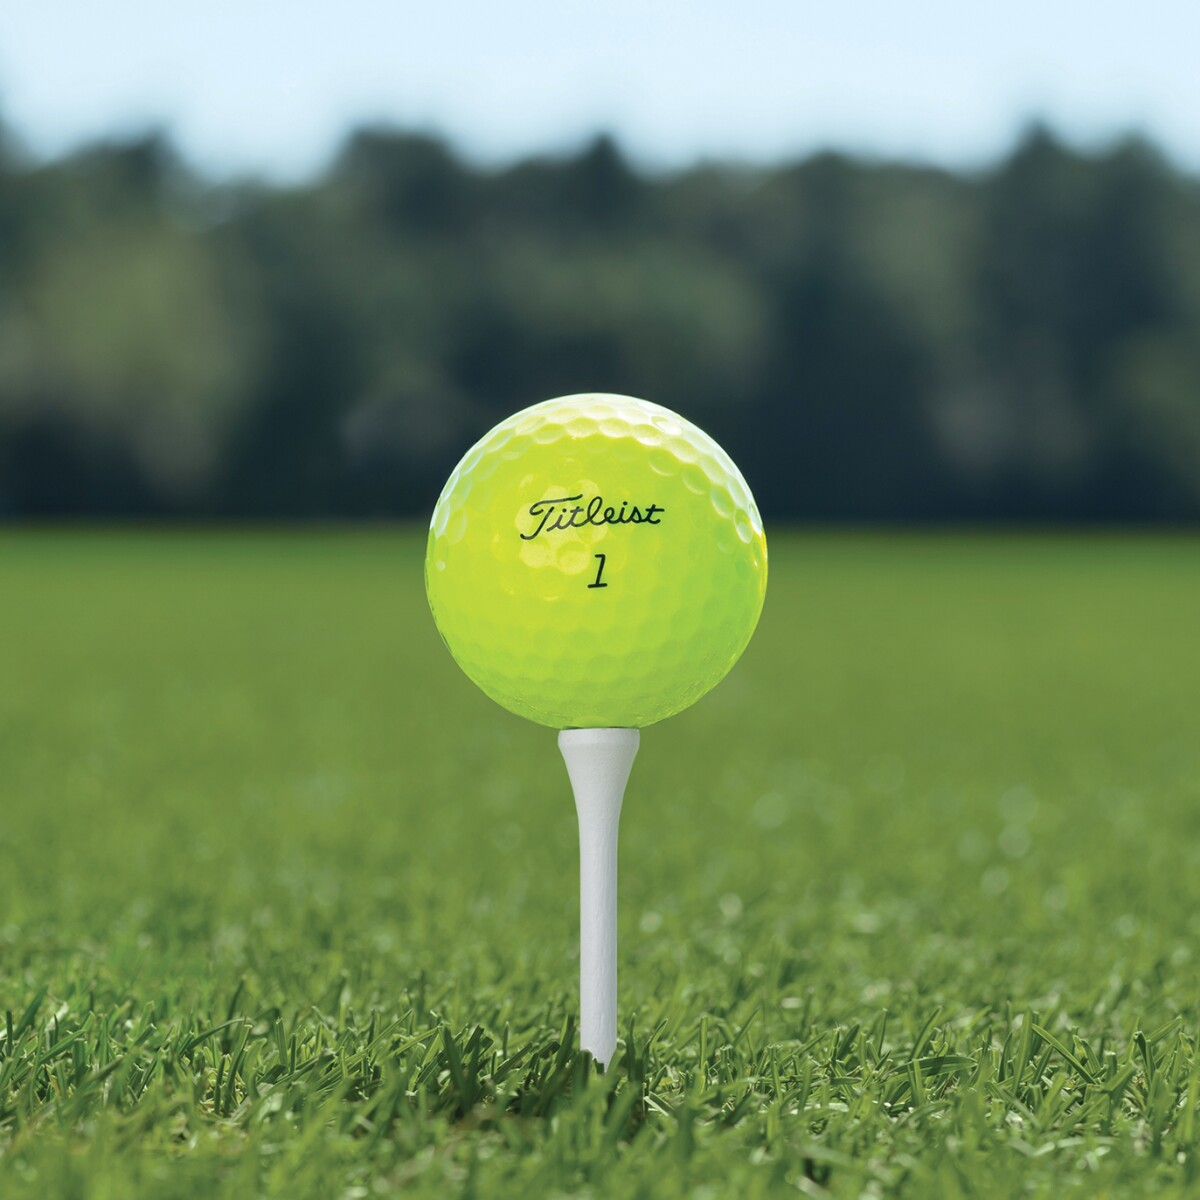 White Out: Why playing a yellow golf ball makes sense